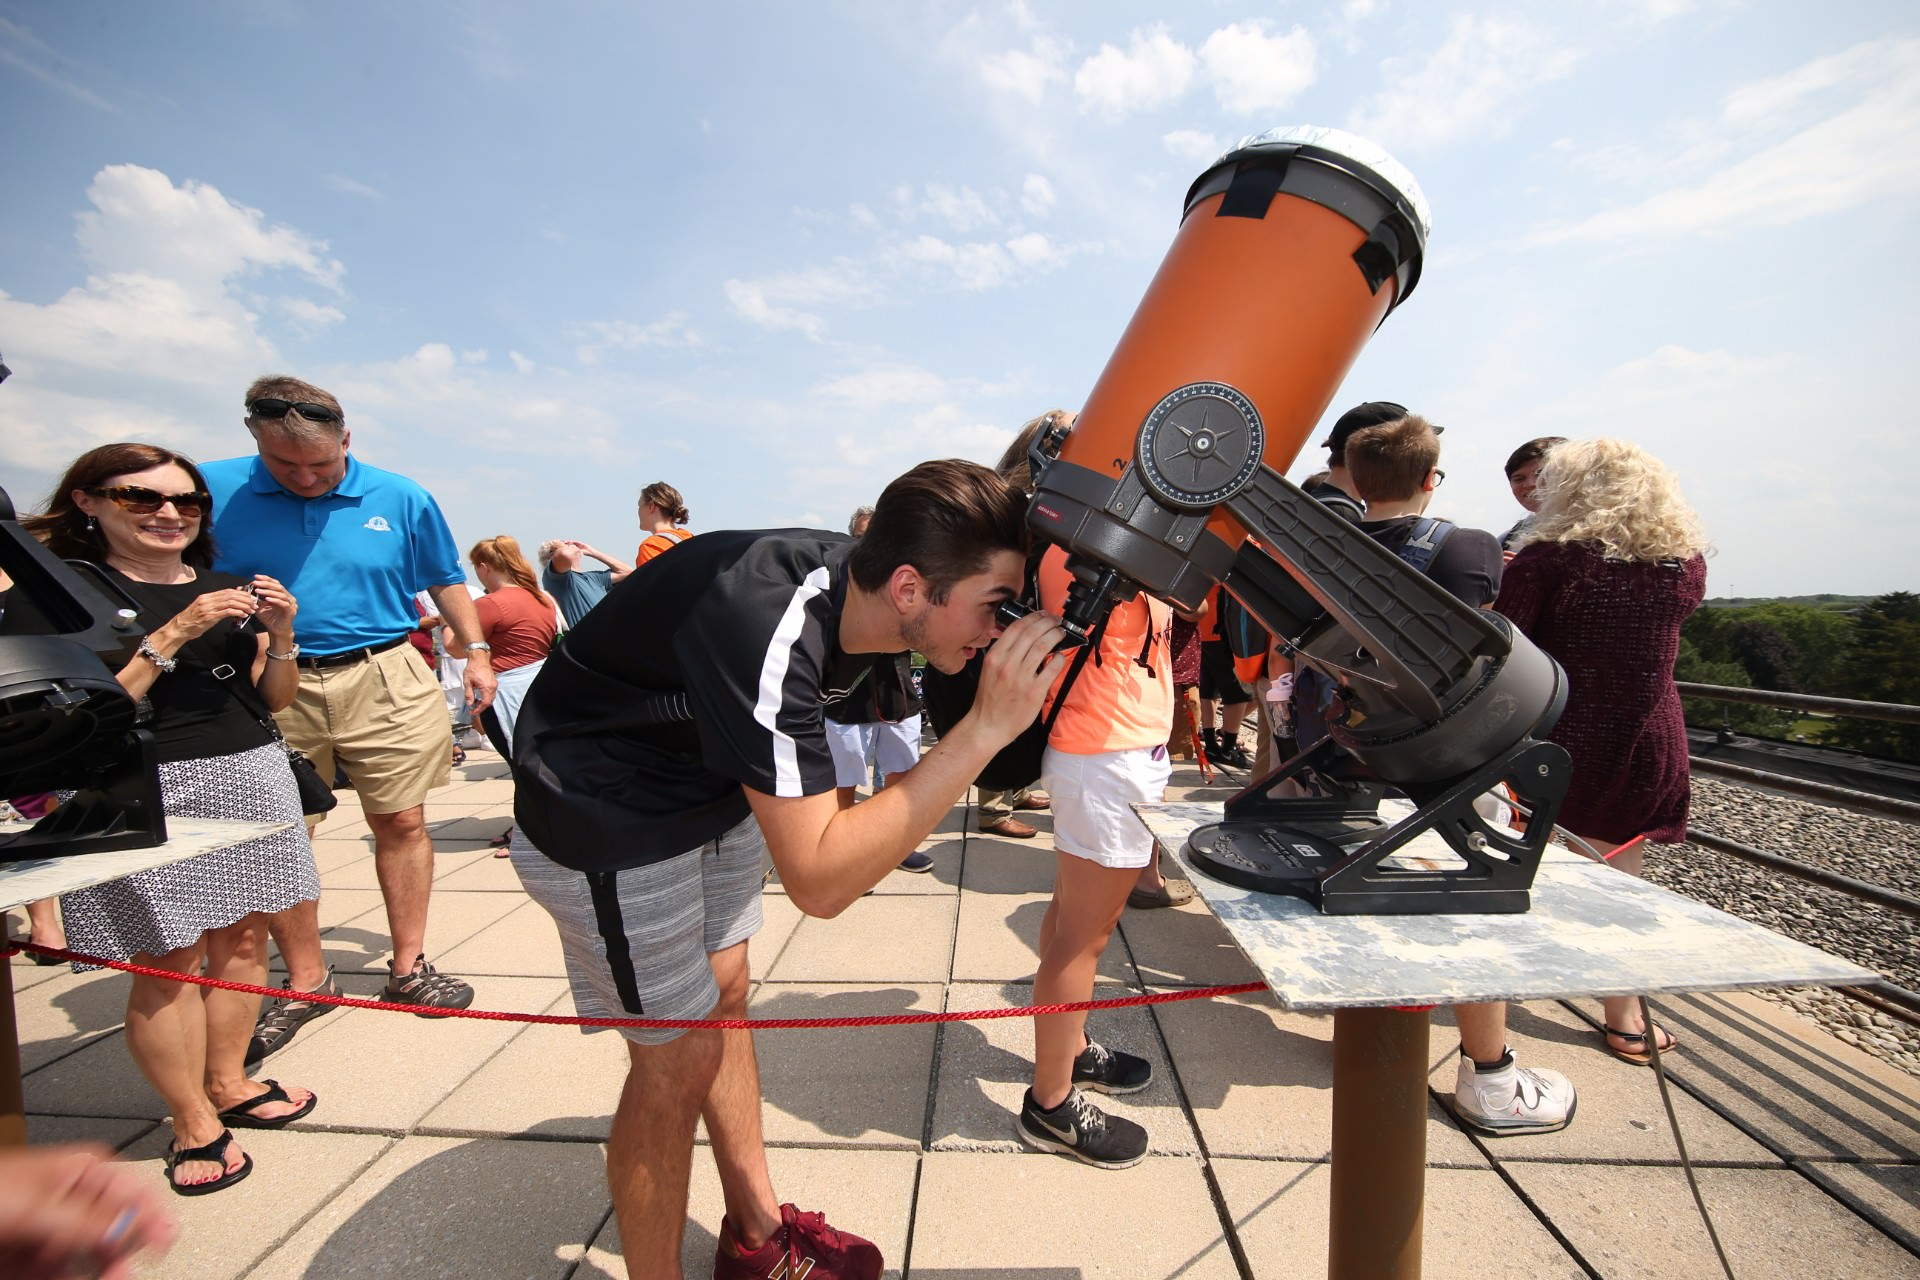 guy wearing black shirt looking into telescope